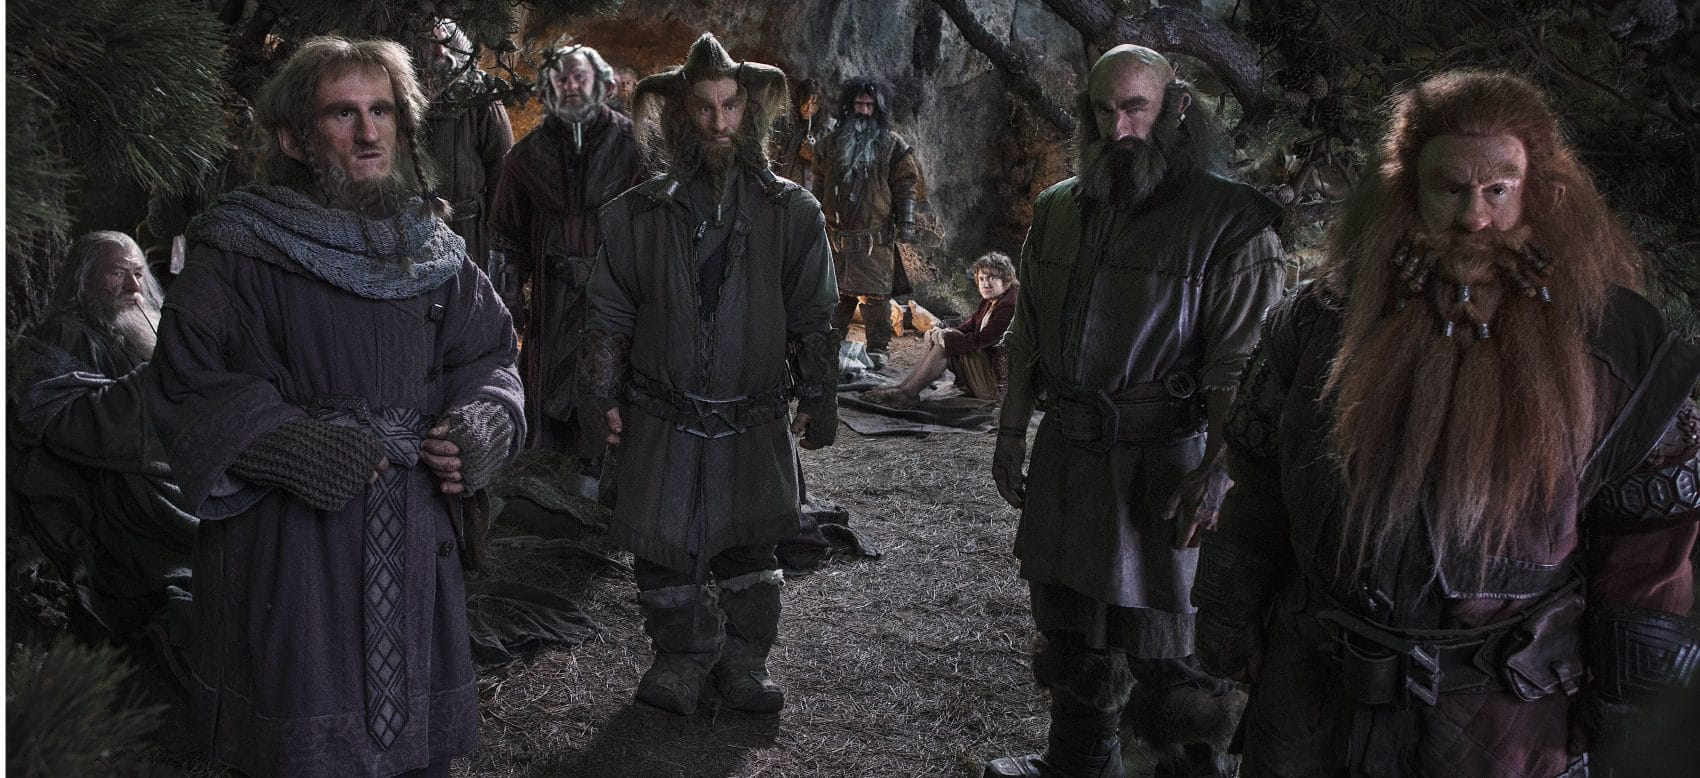 The Hobbit et la carrière de Peter Jackson